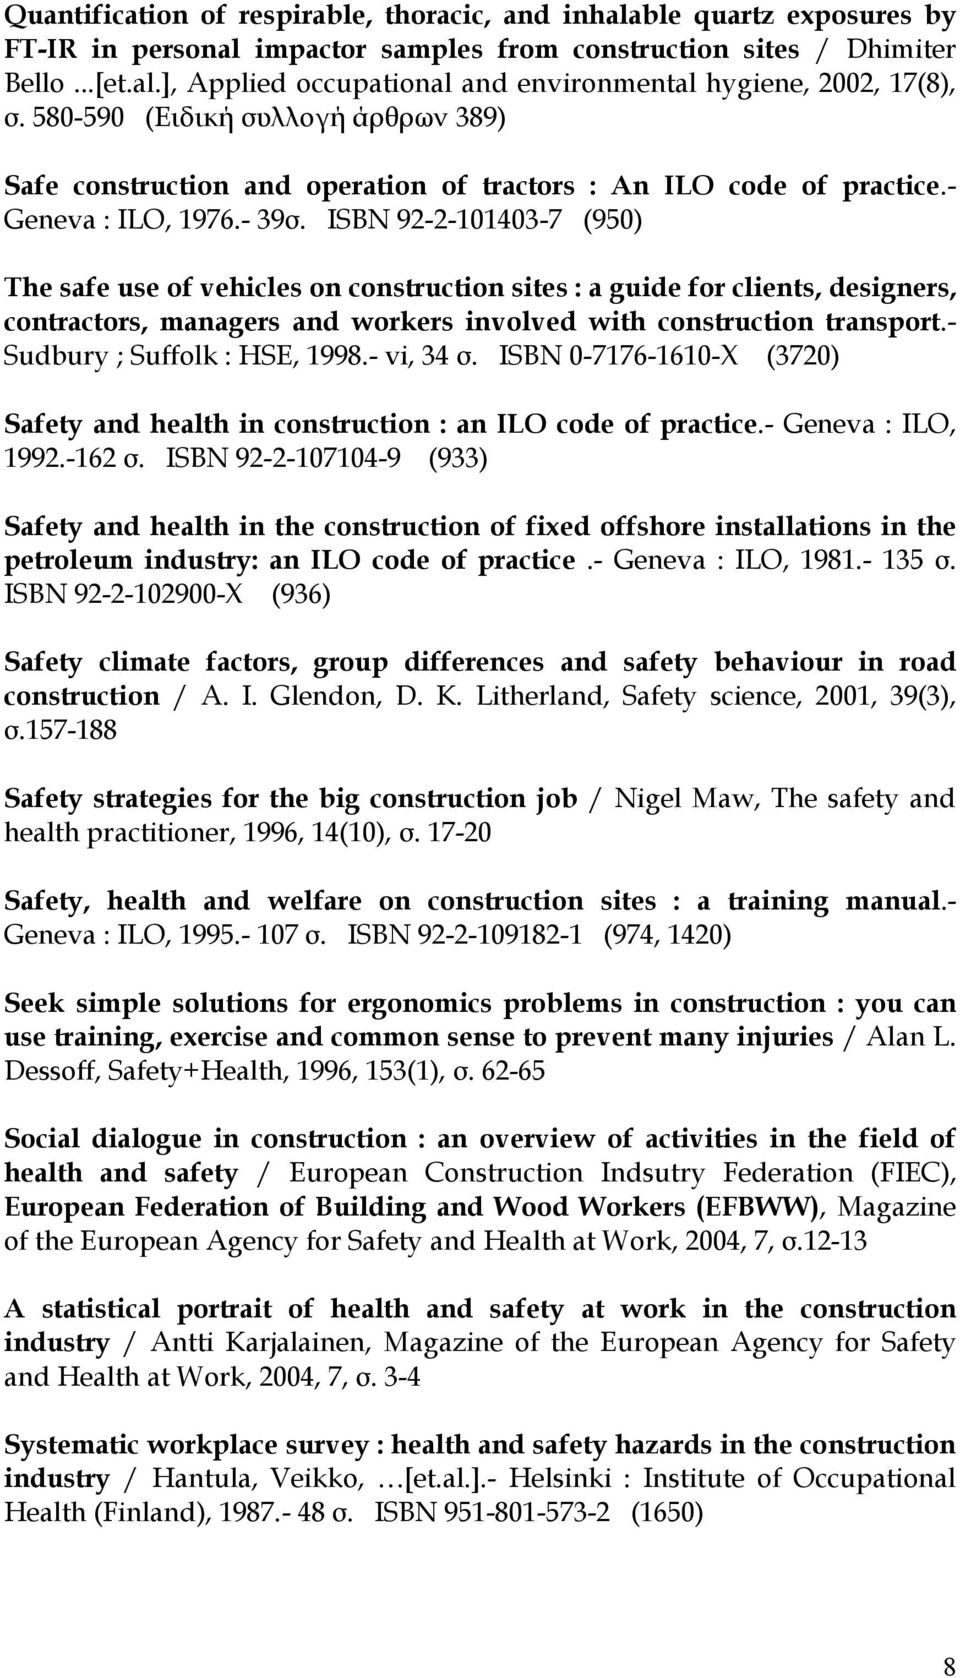 ISBN 92-2-101403-7 (950) The safe use of vehicles on construction sites : a guide for clients, designers, contractors, managers and workers involved with construction transport.